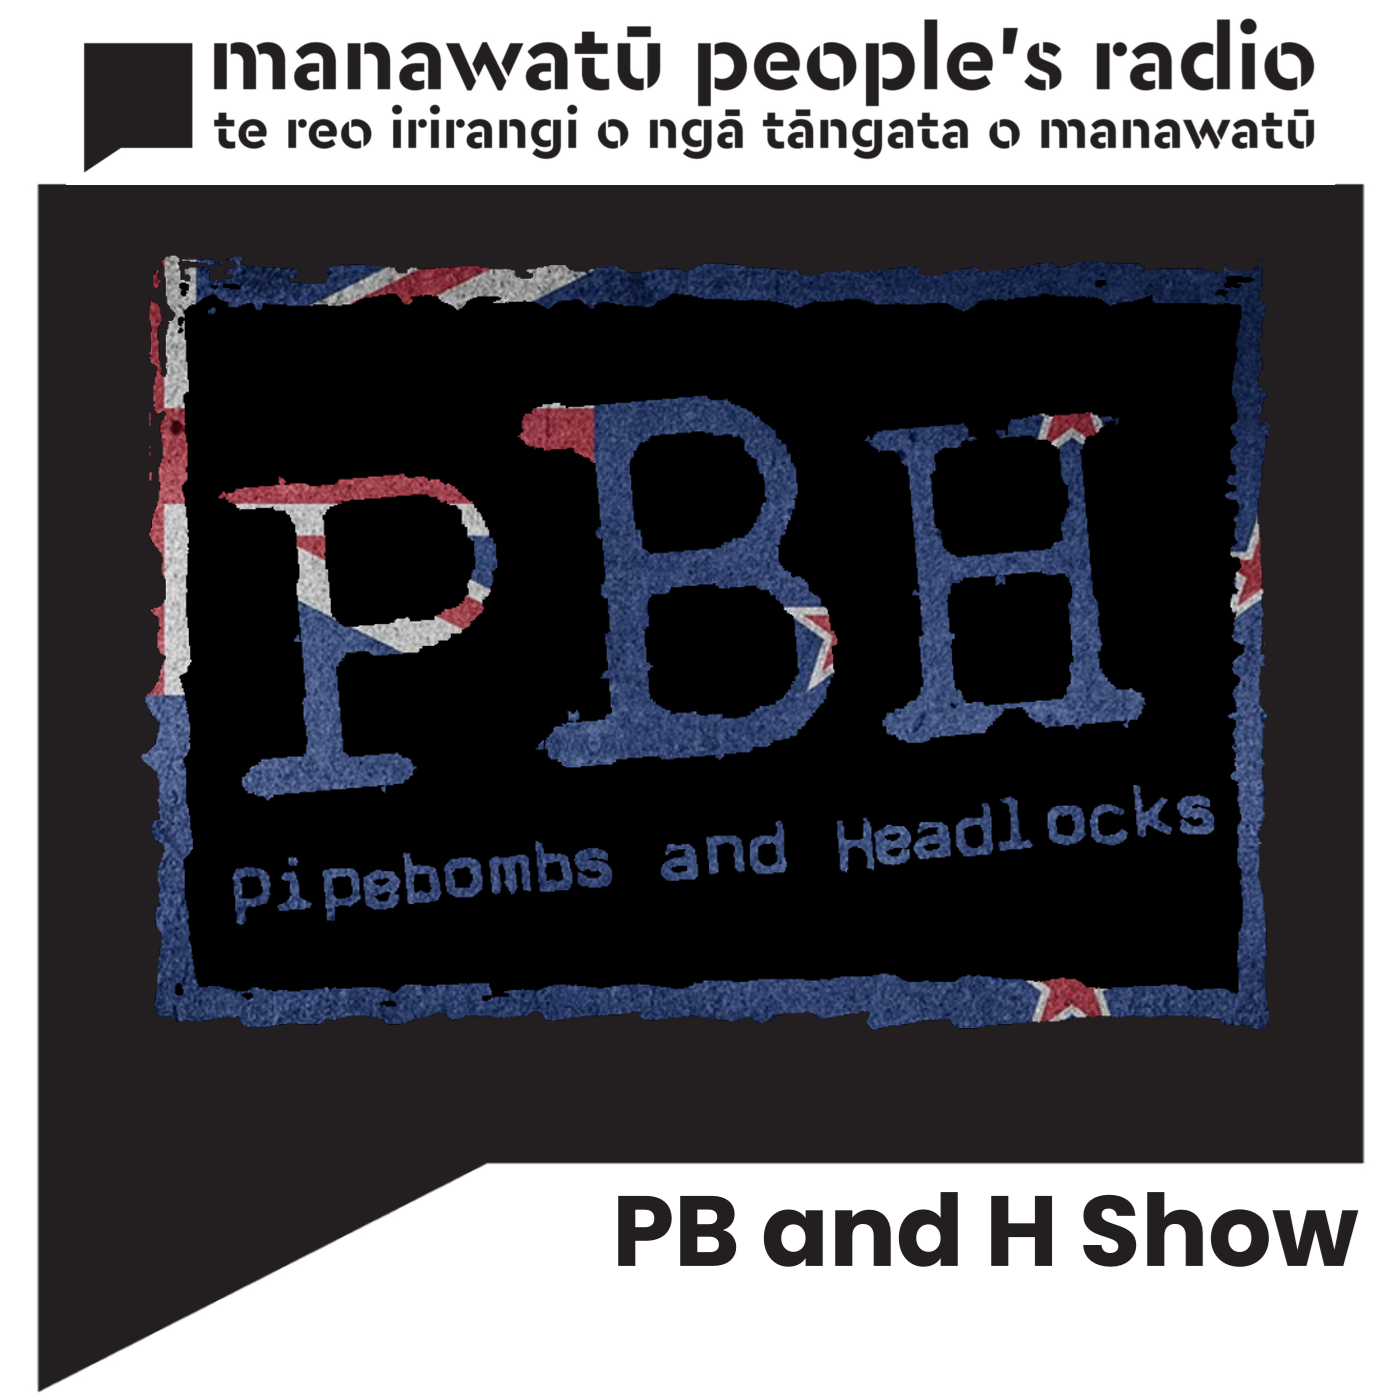 https://static.accessradio.org/StationFolder/manawatu/Images/MPRPBandHShow.png